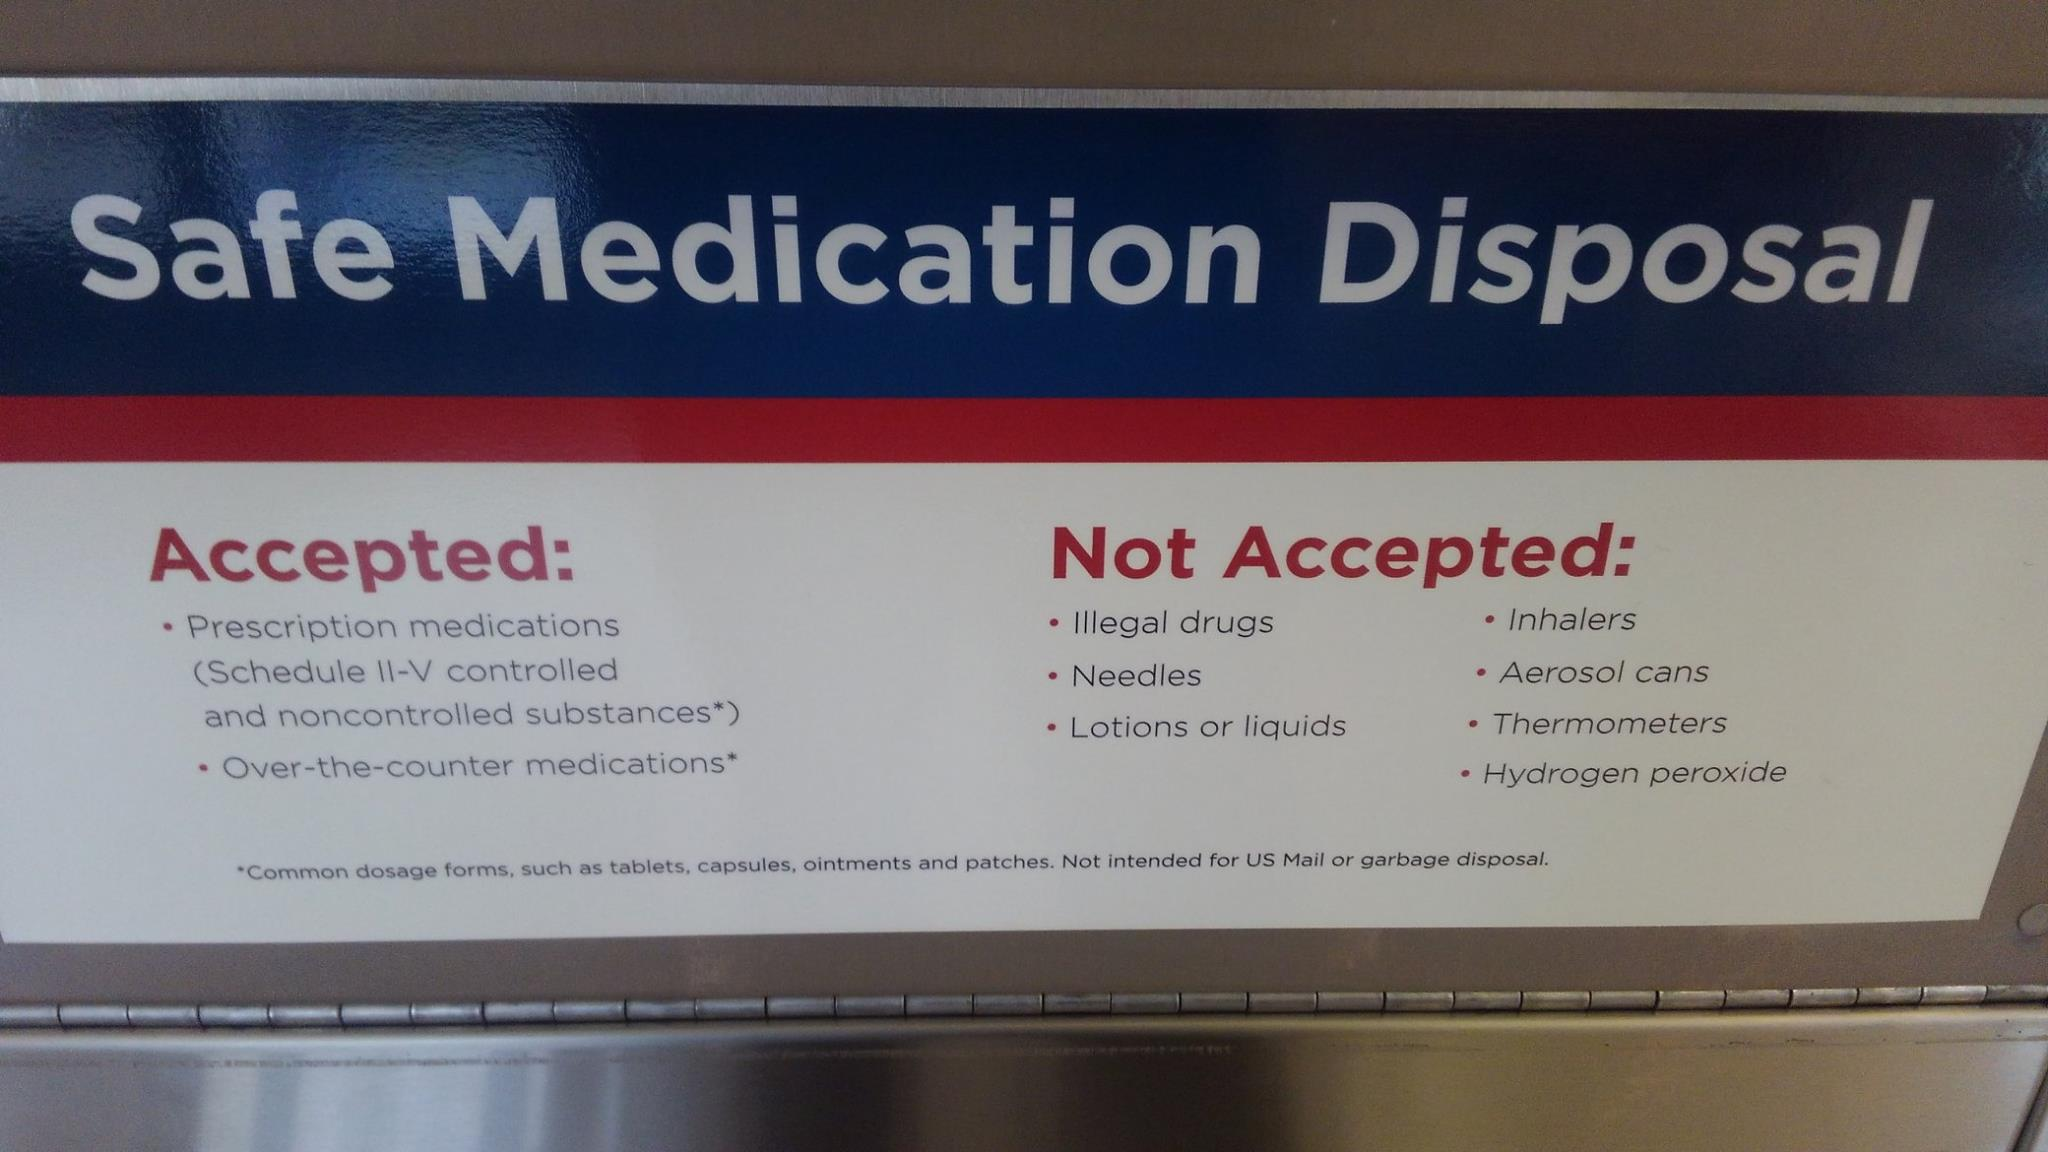 Safe Medication Disposal